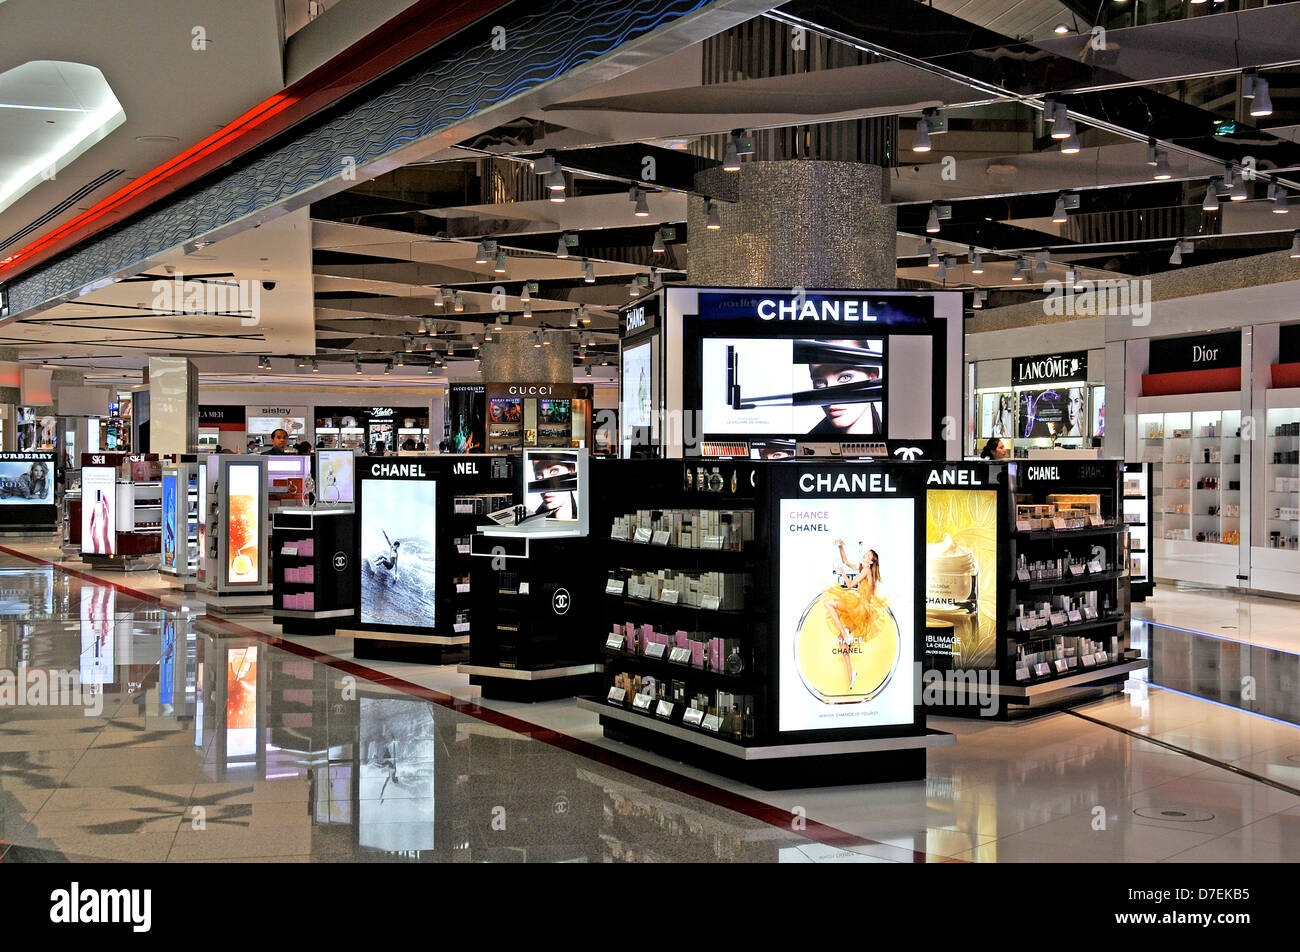 Duty free shop international airport Dubai UAE - Stock Image